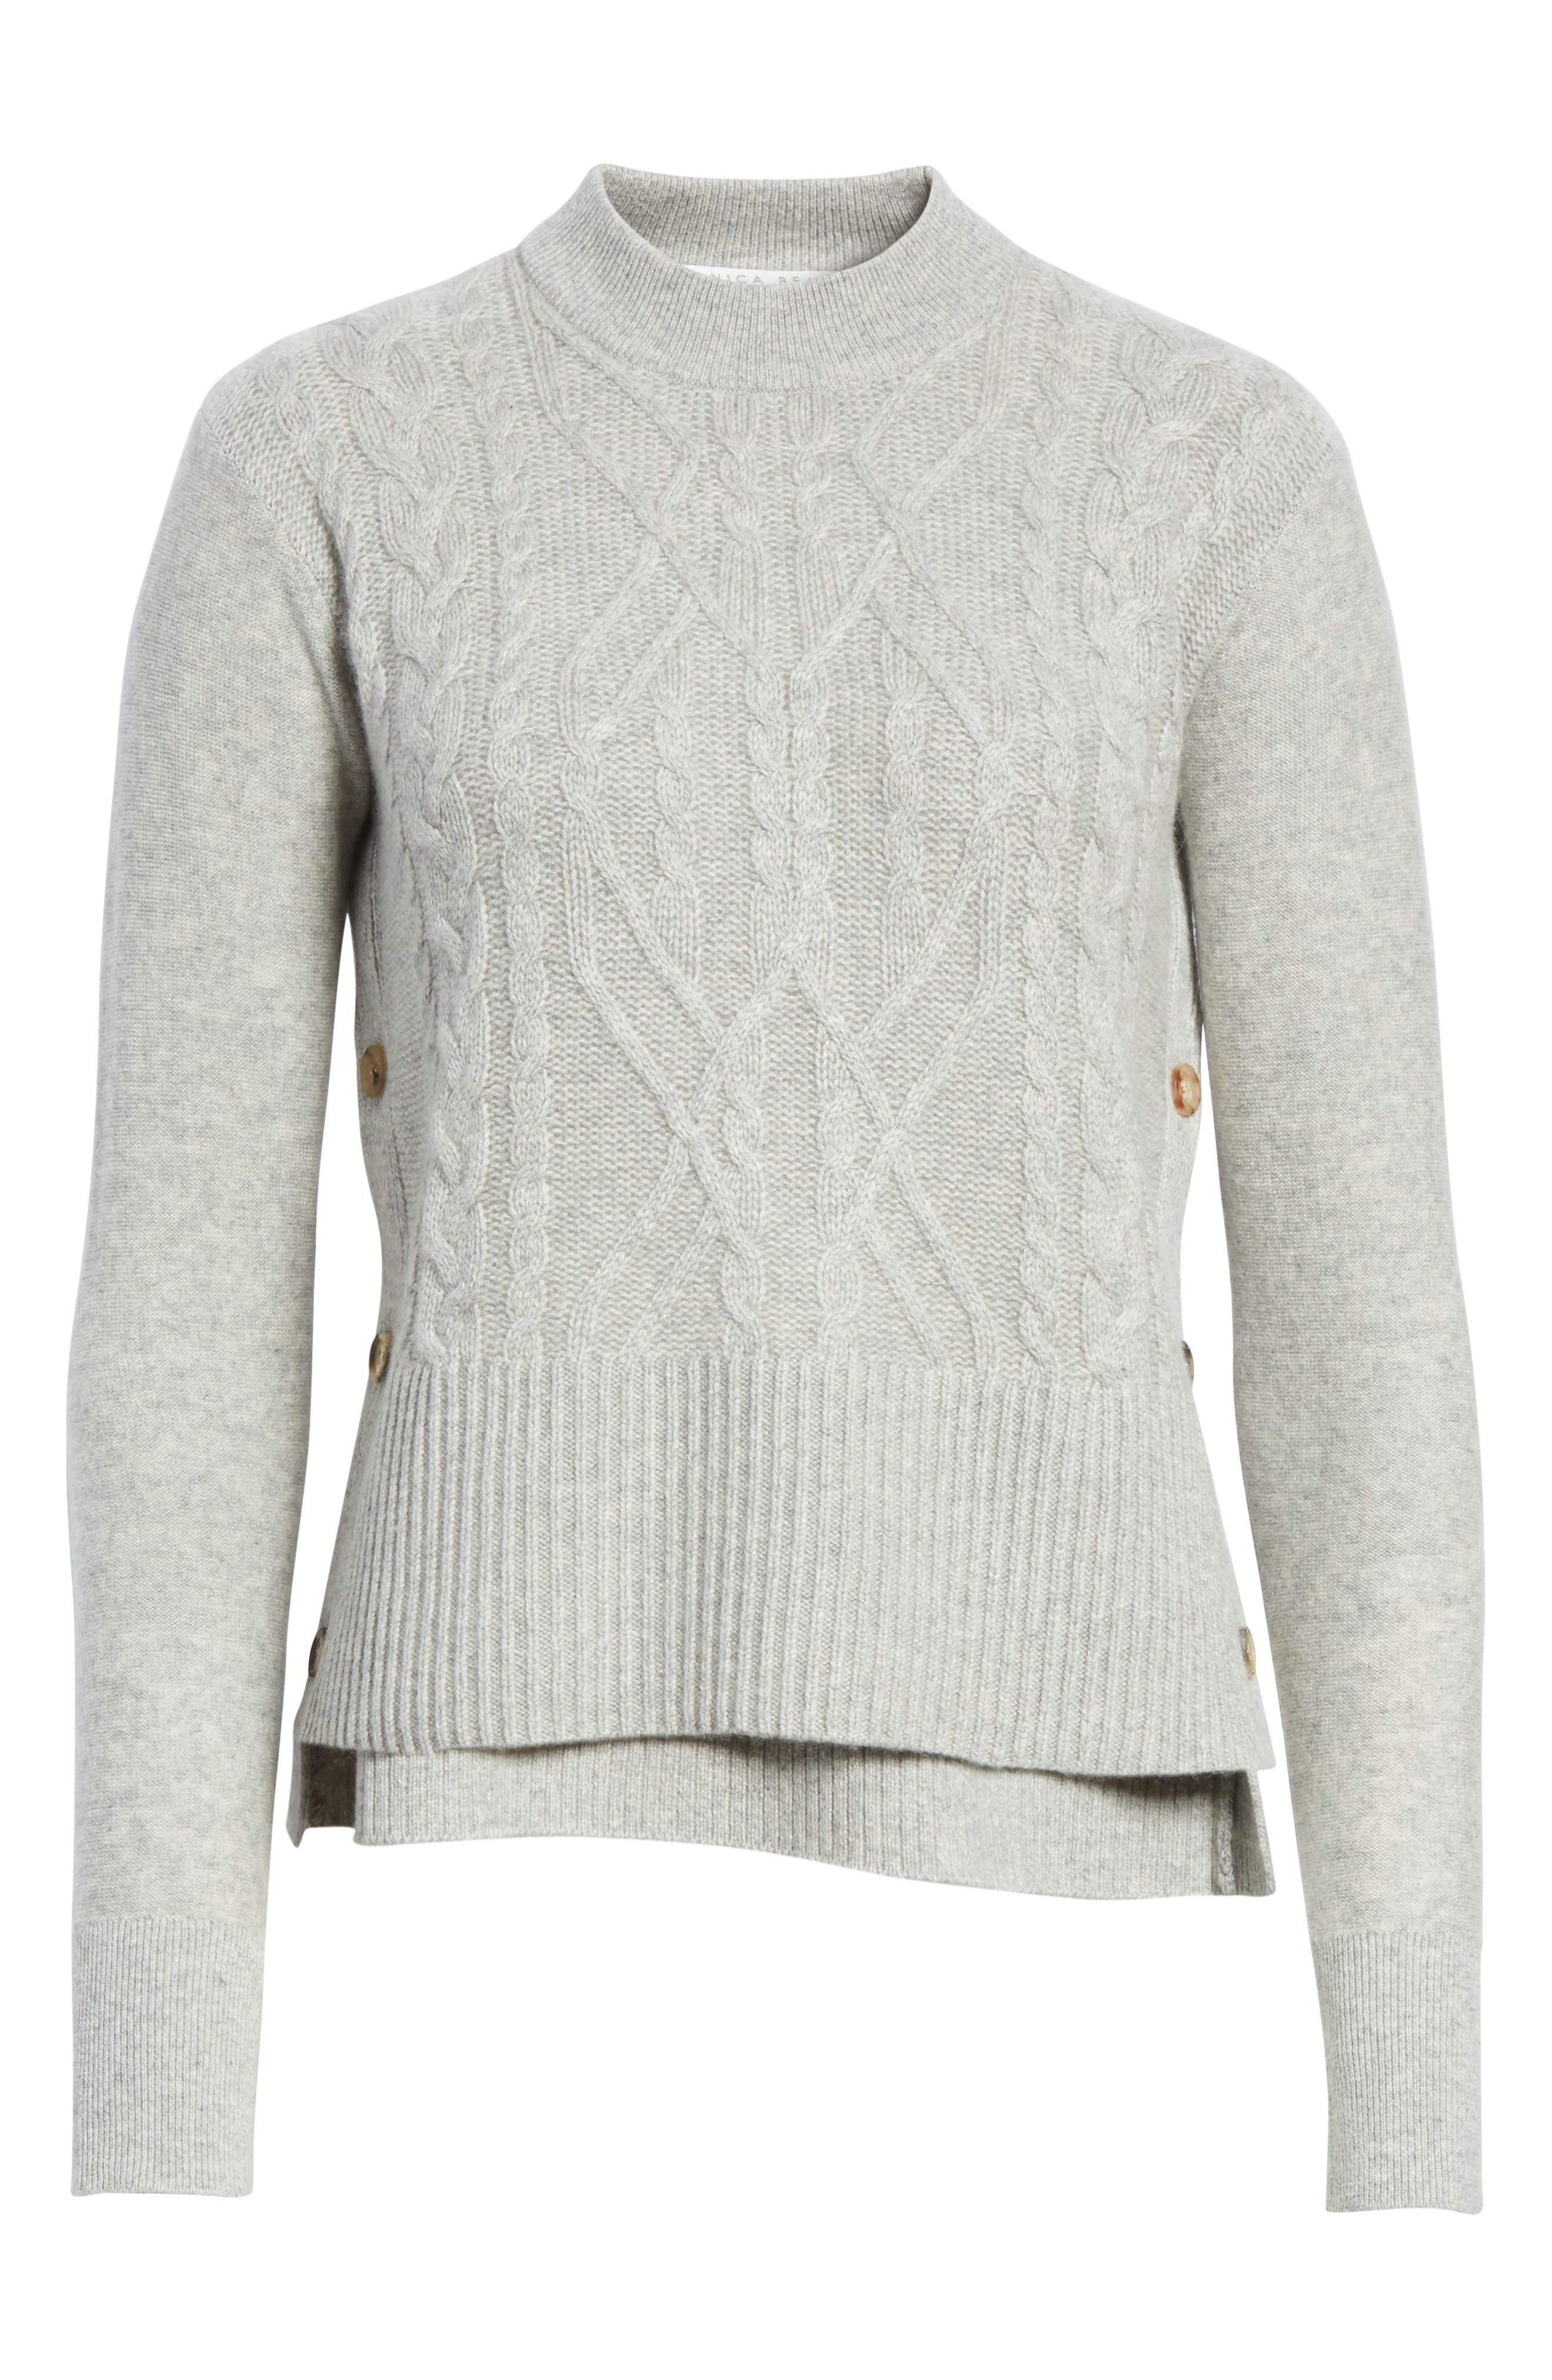 Kenna Cashmere Sweater,                             Alternate thumbnail 6, color,                             Grey